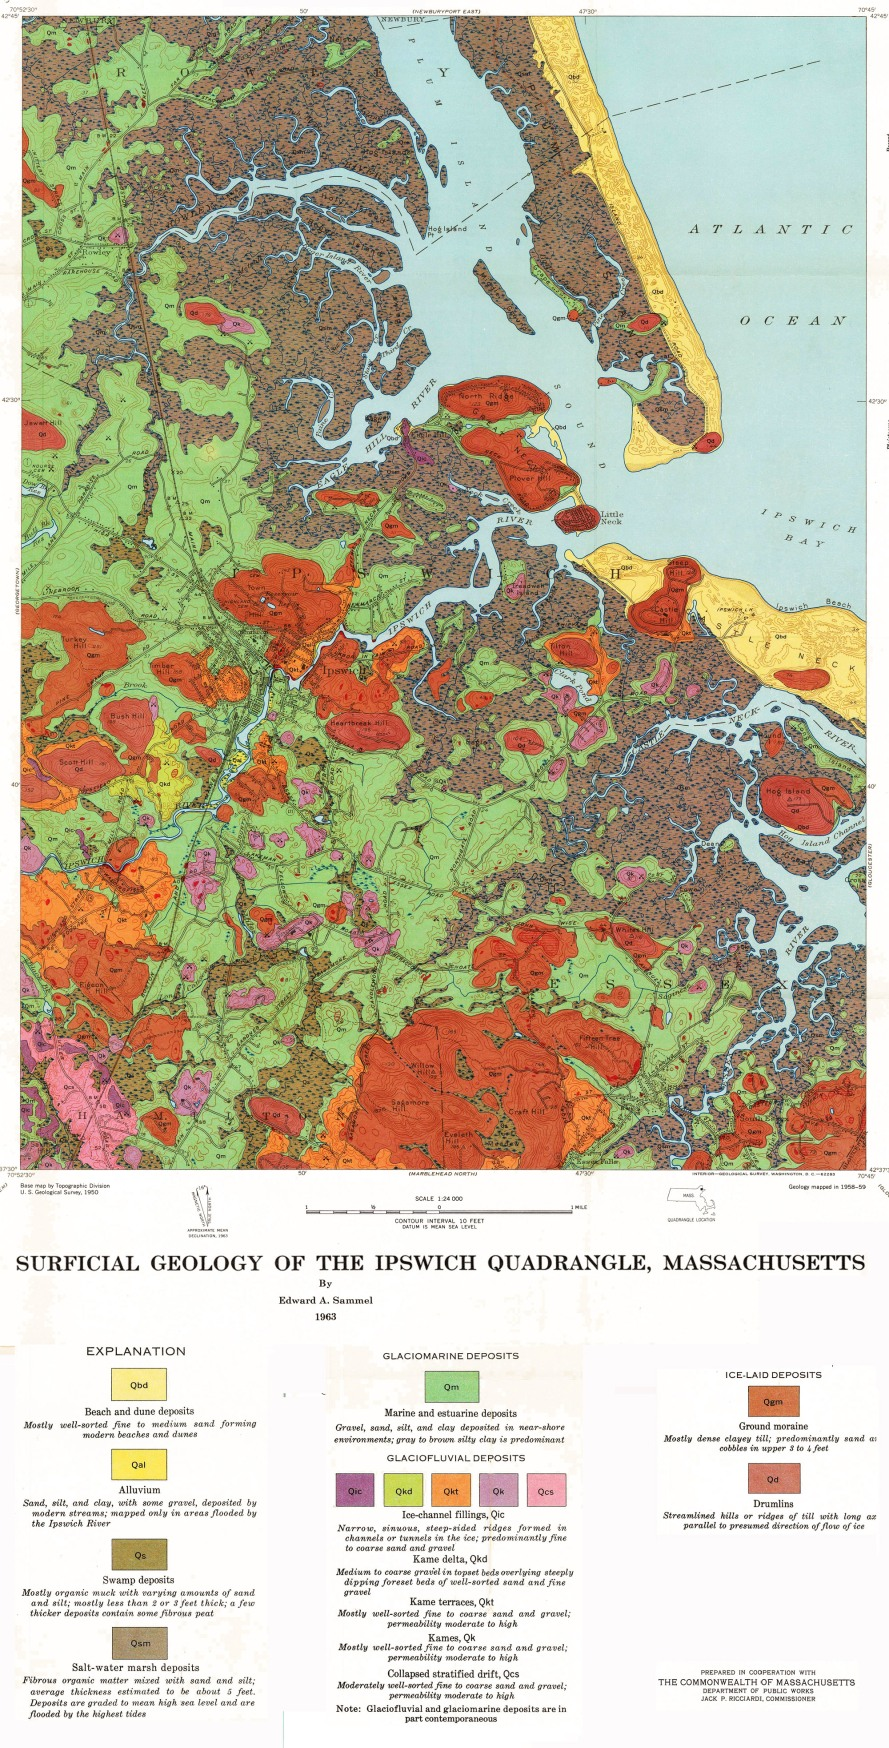 USGS Geologic Quadrangle Map GQ-189